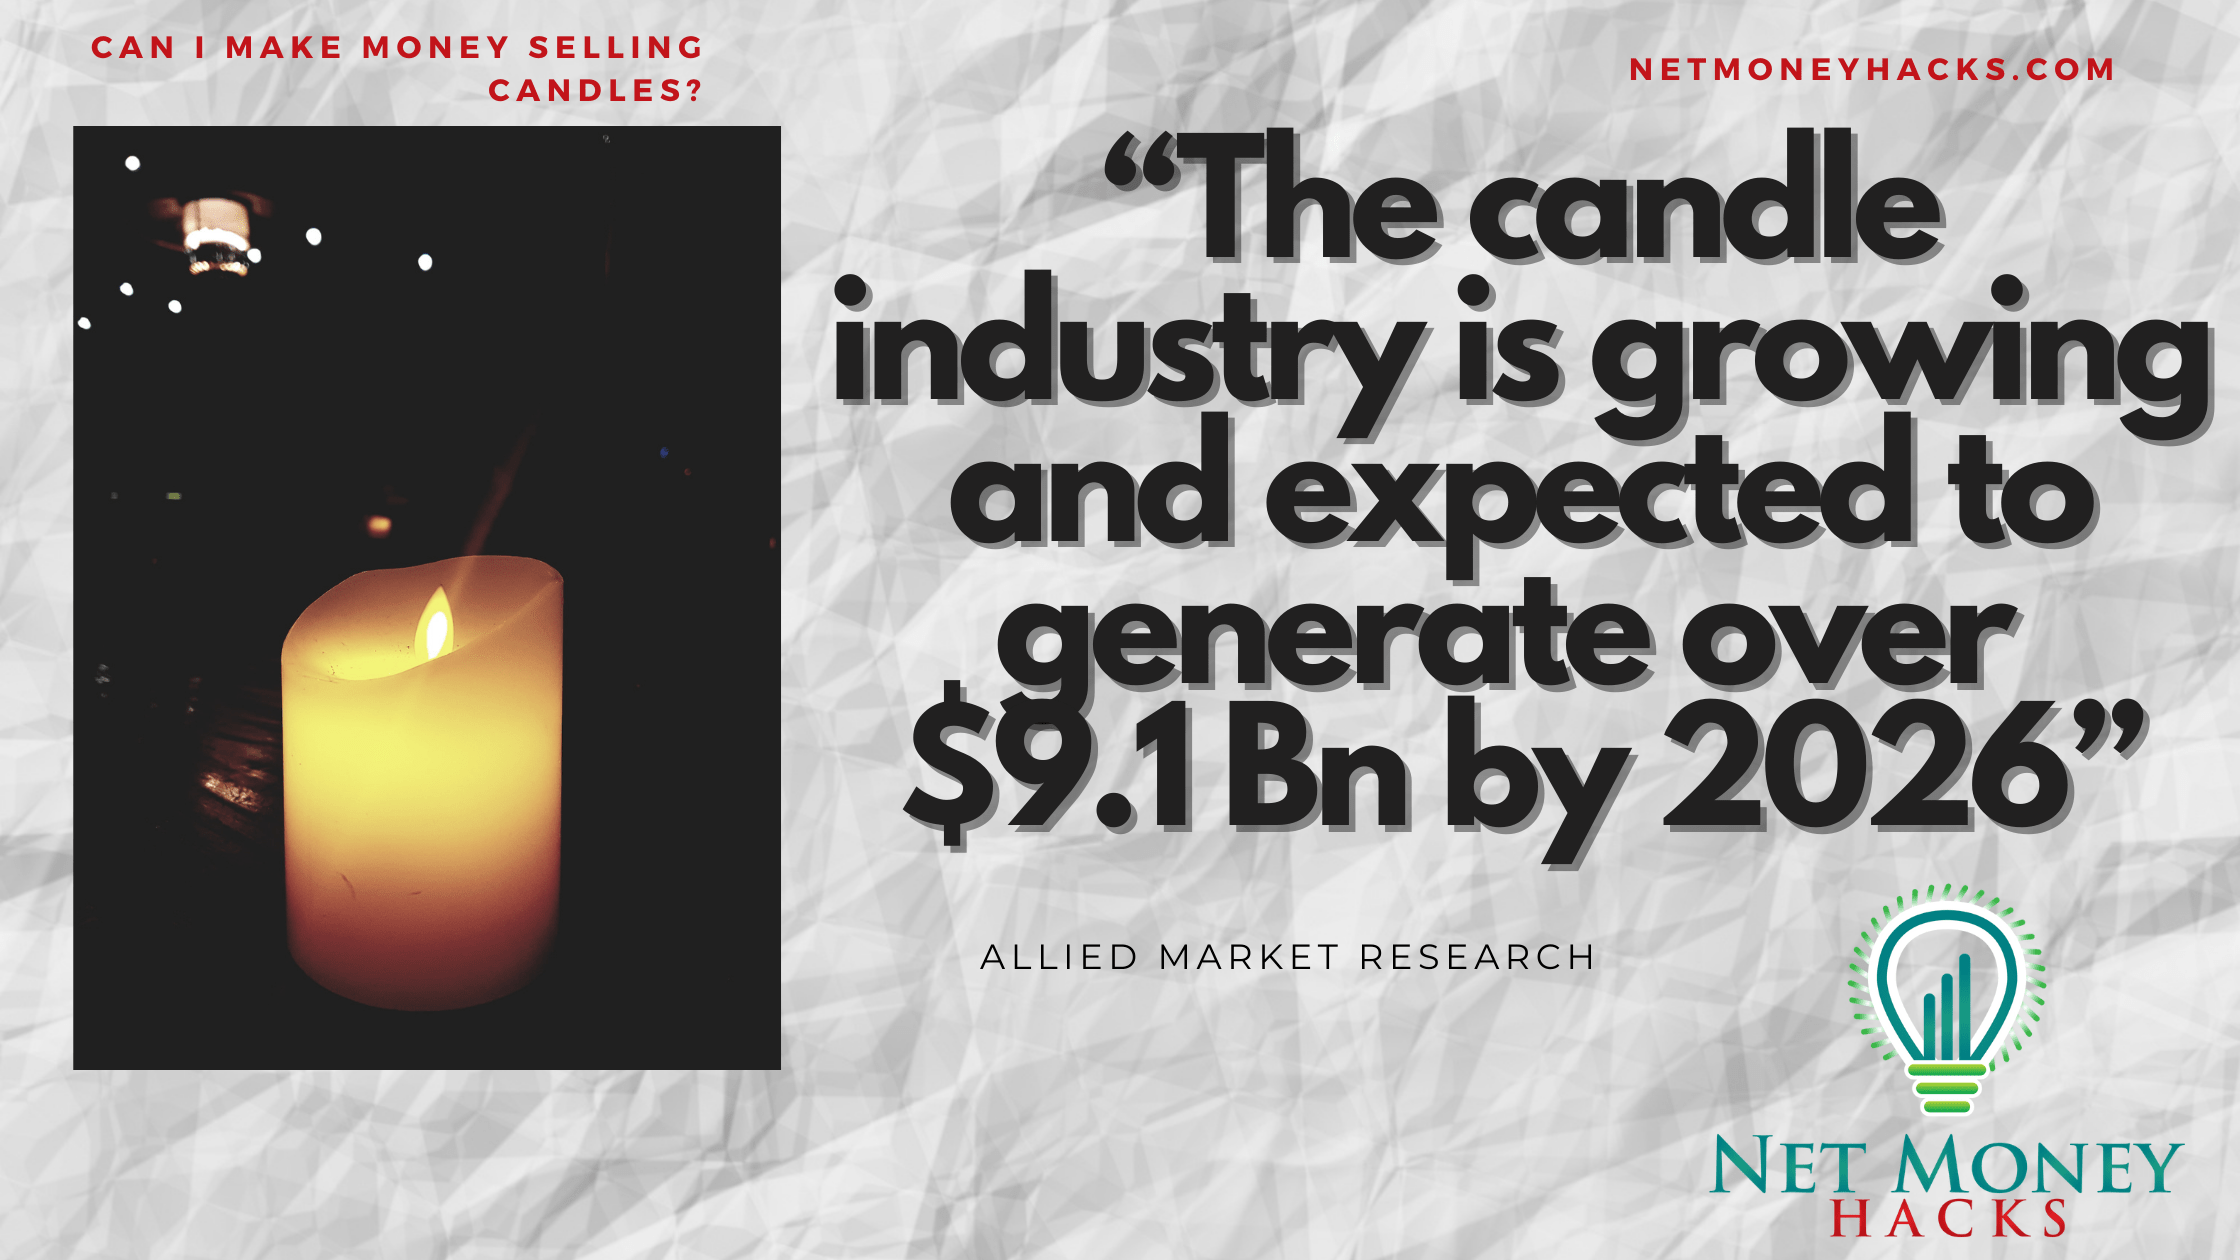 Candle Industry growth data from Allied Market Research